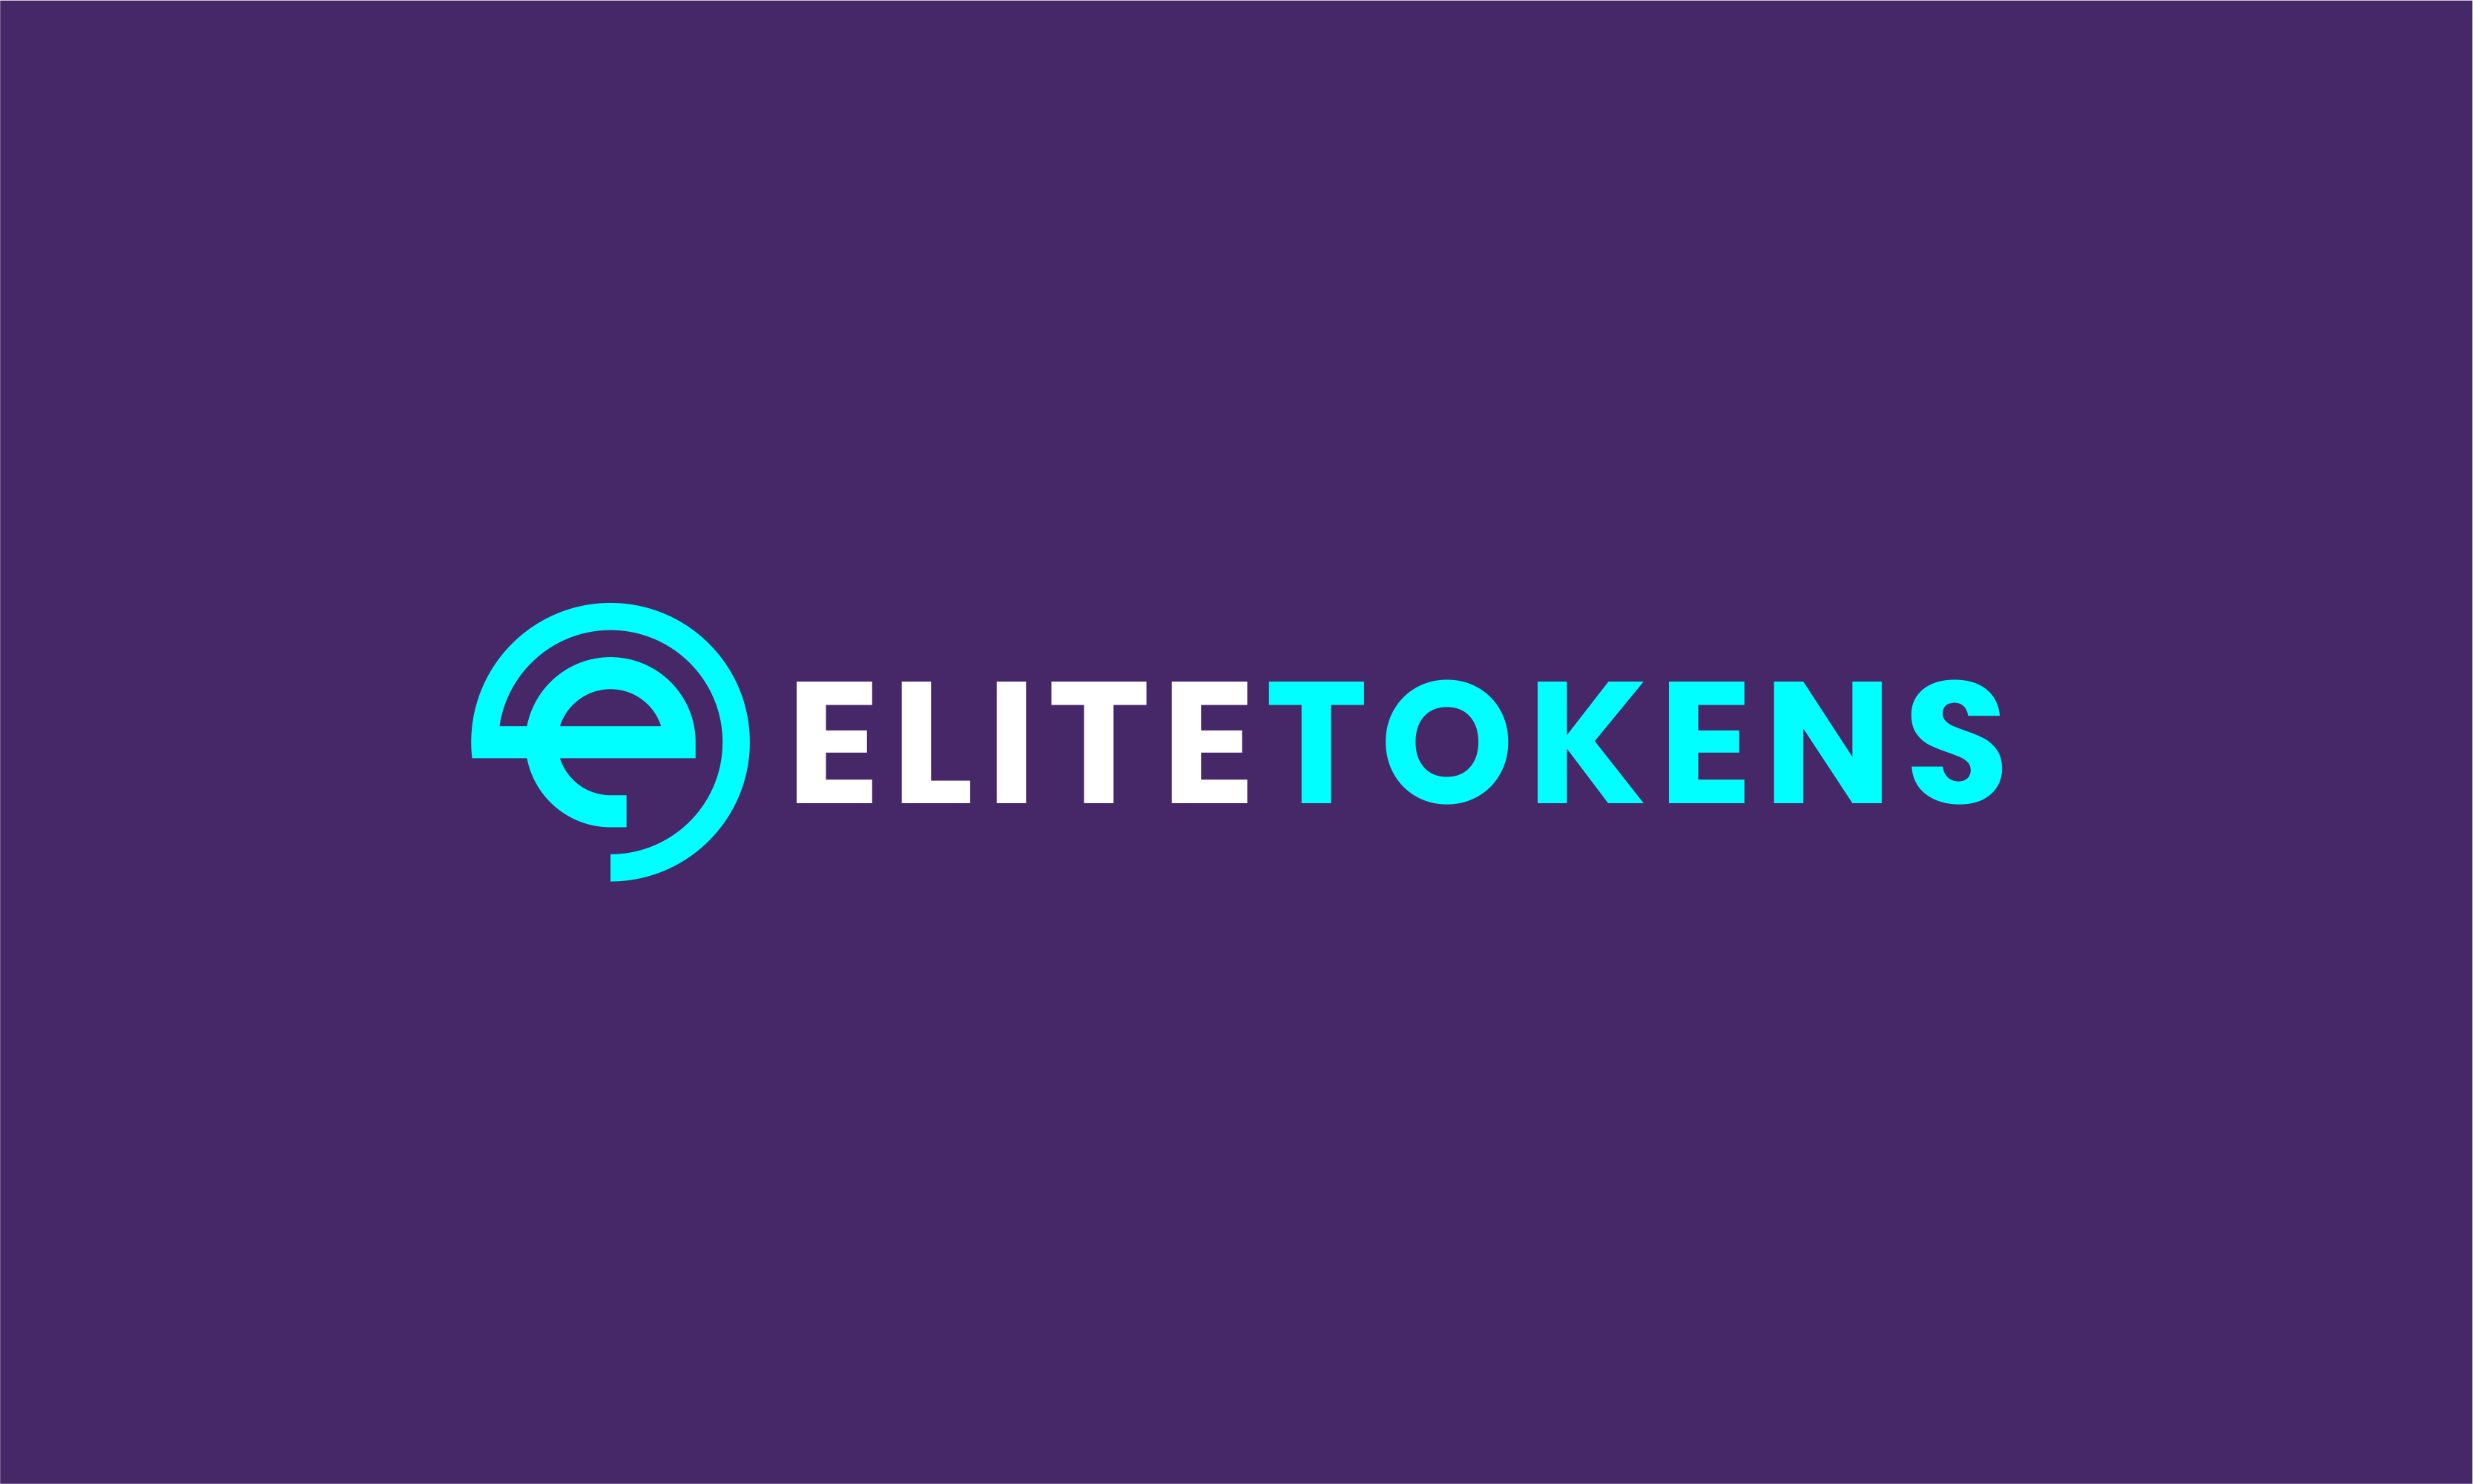 Elitetokens